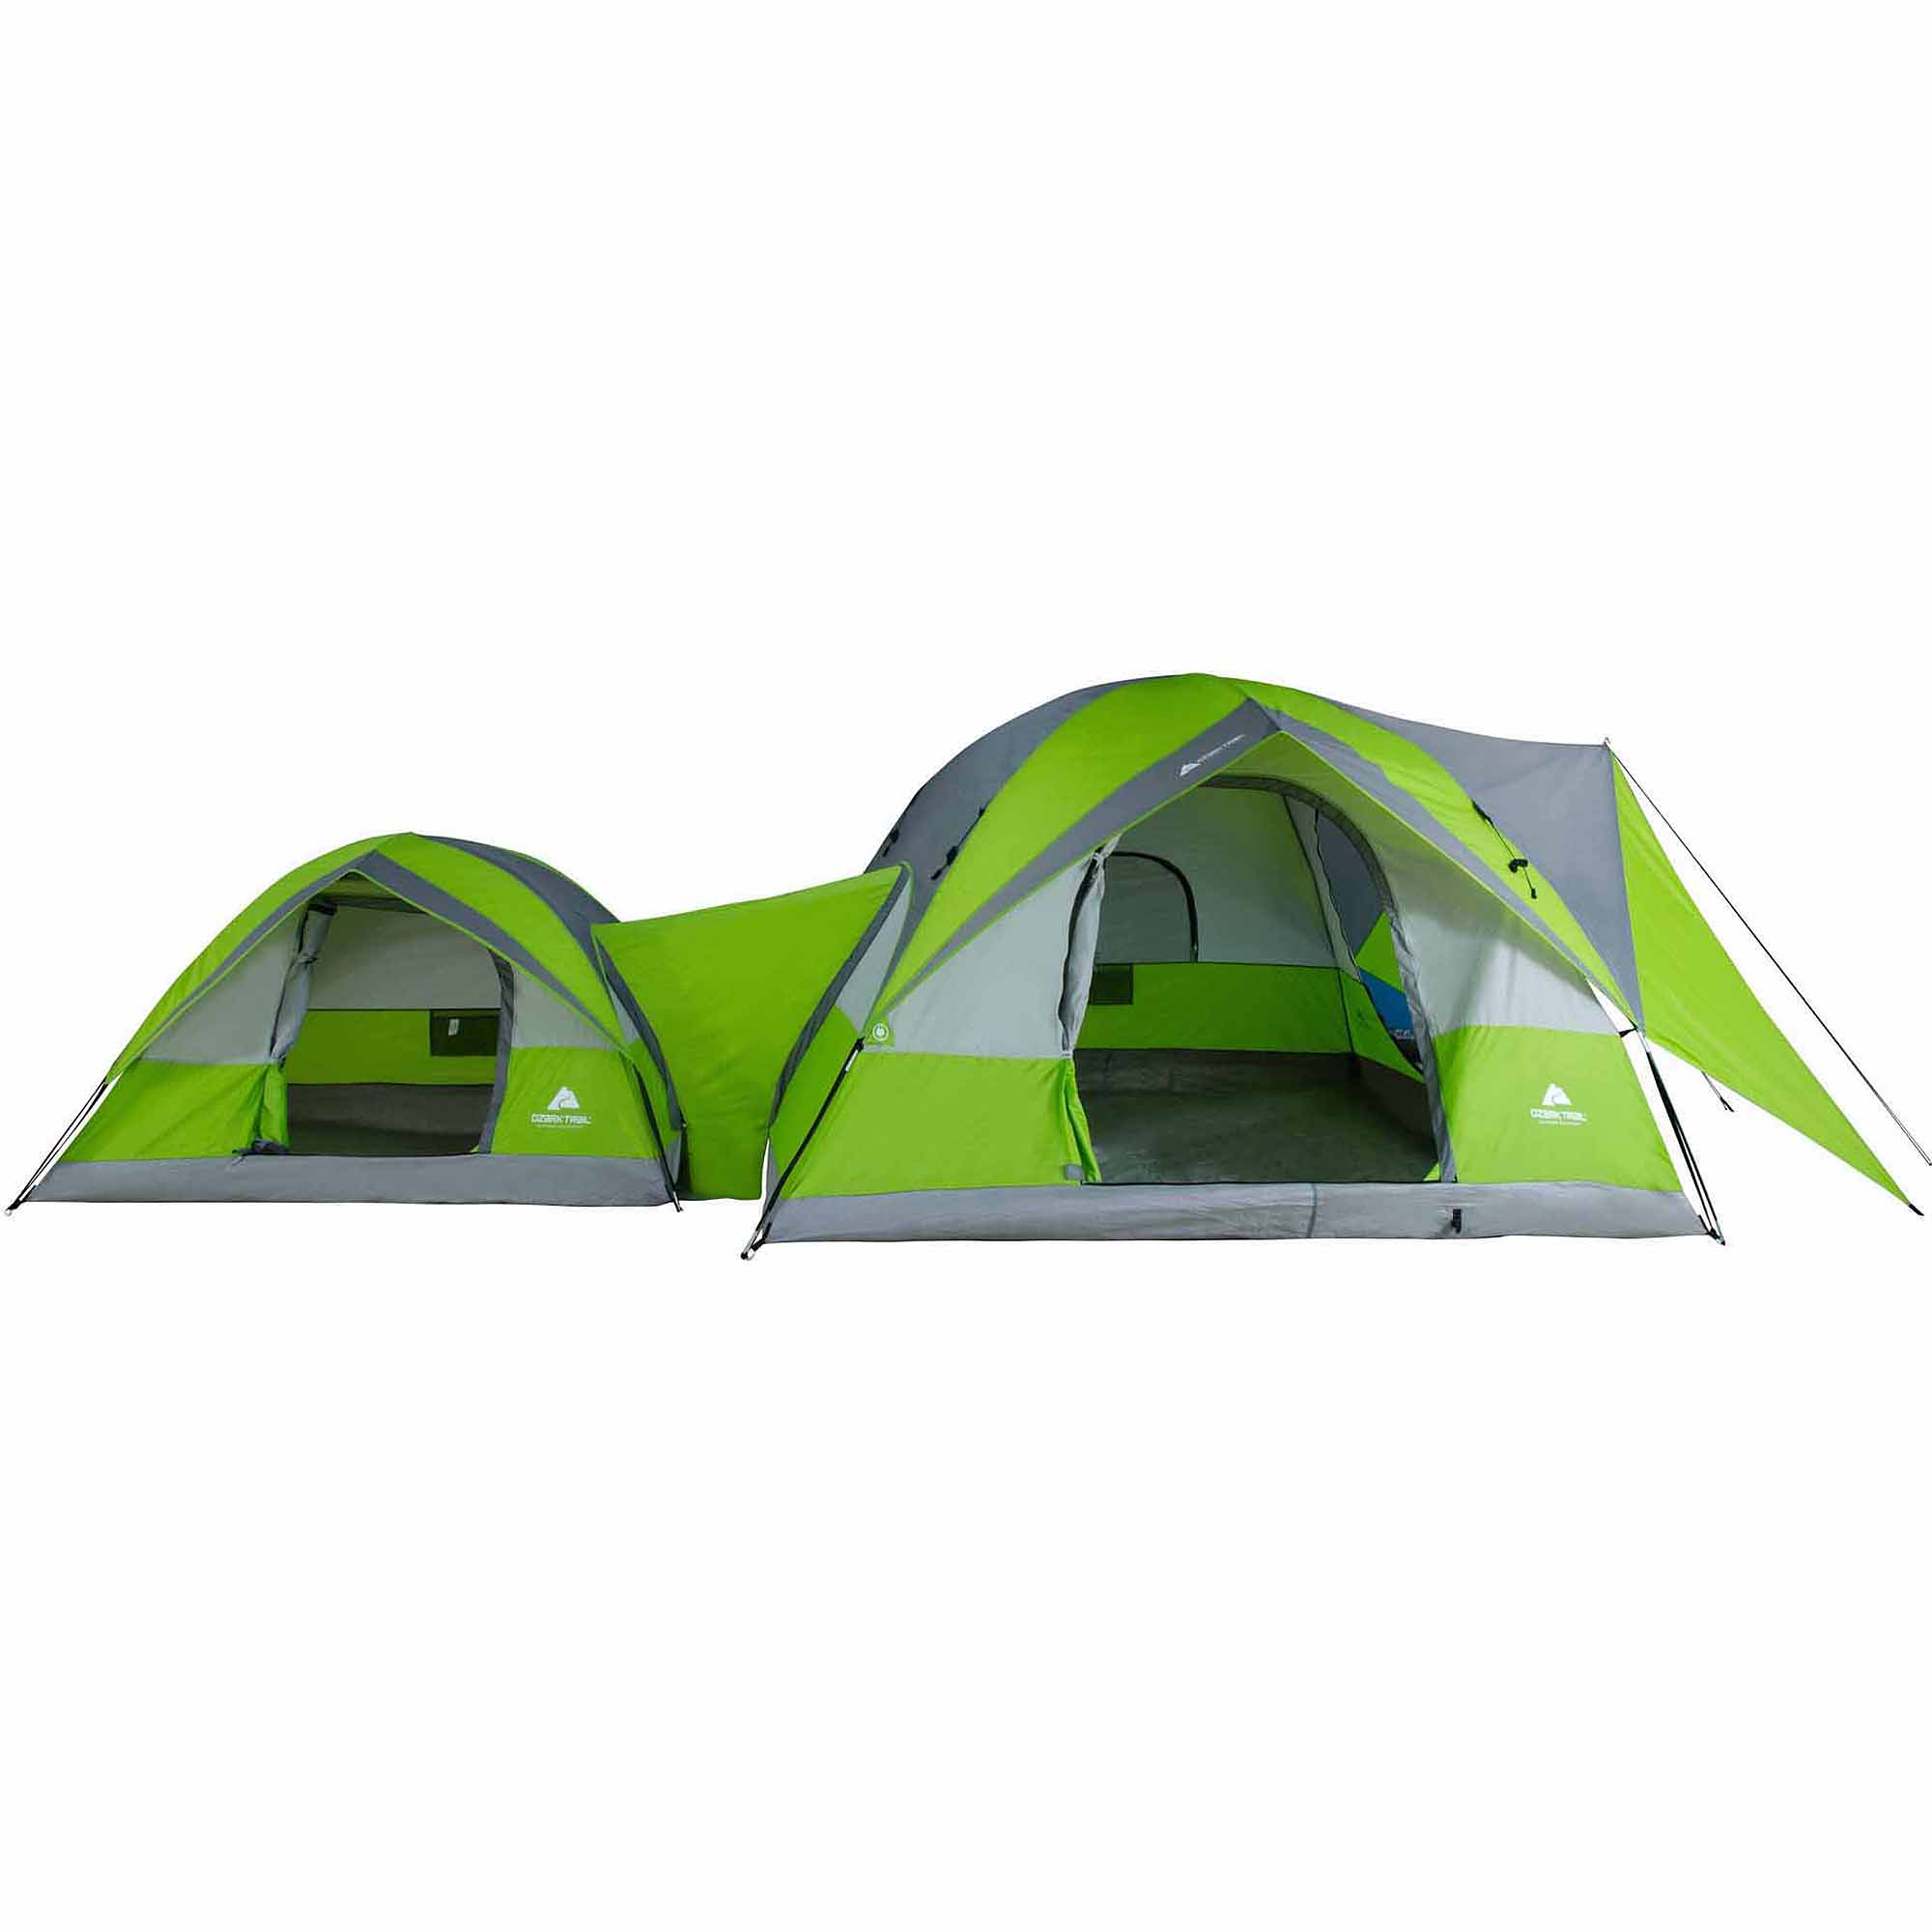 sc 1 st  Walmart & Ozark Trail 2-Dome Connection Camping Tent for 8 People - Walmart.com